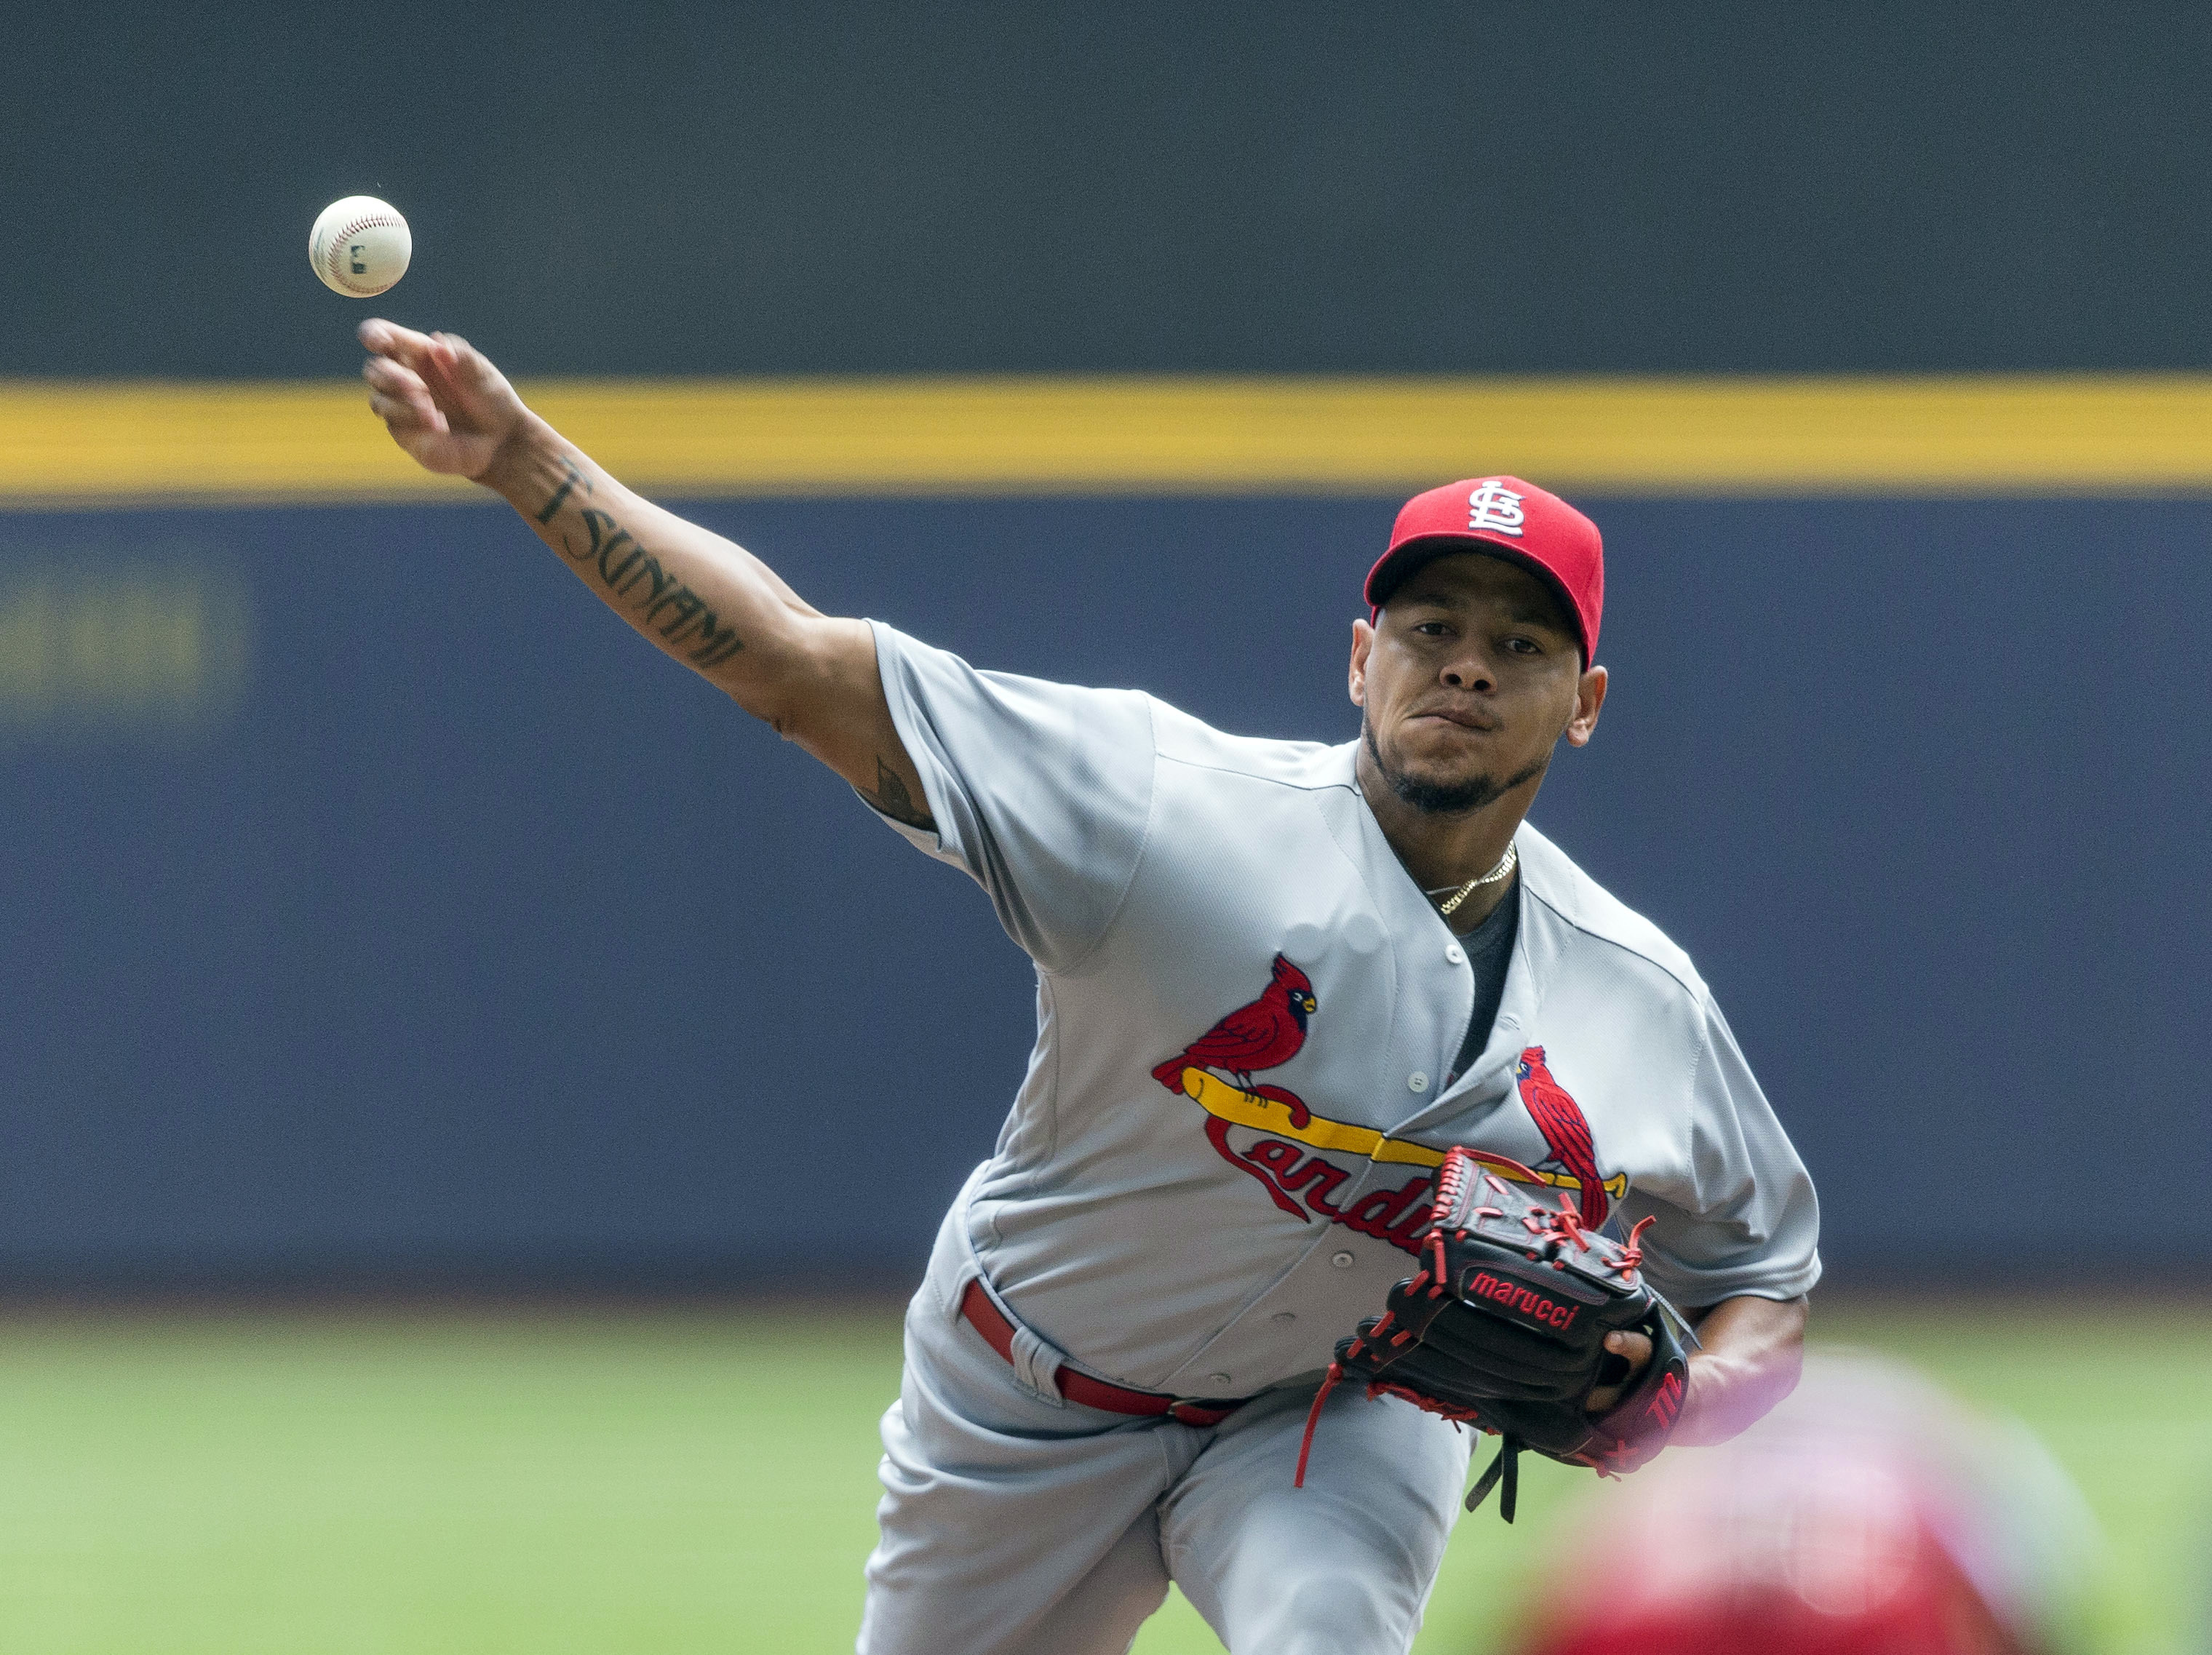 St. Louis Cardinals' Carlos Martinez pitches to a Milwaukee Brewers' batter during the first inning of a baseball game Saturday, July 9, 2016, in Milwaukee. (AP Photo/Tom Lynn)